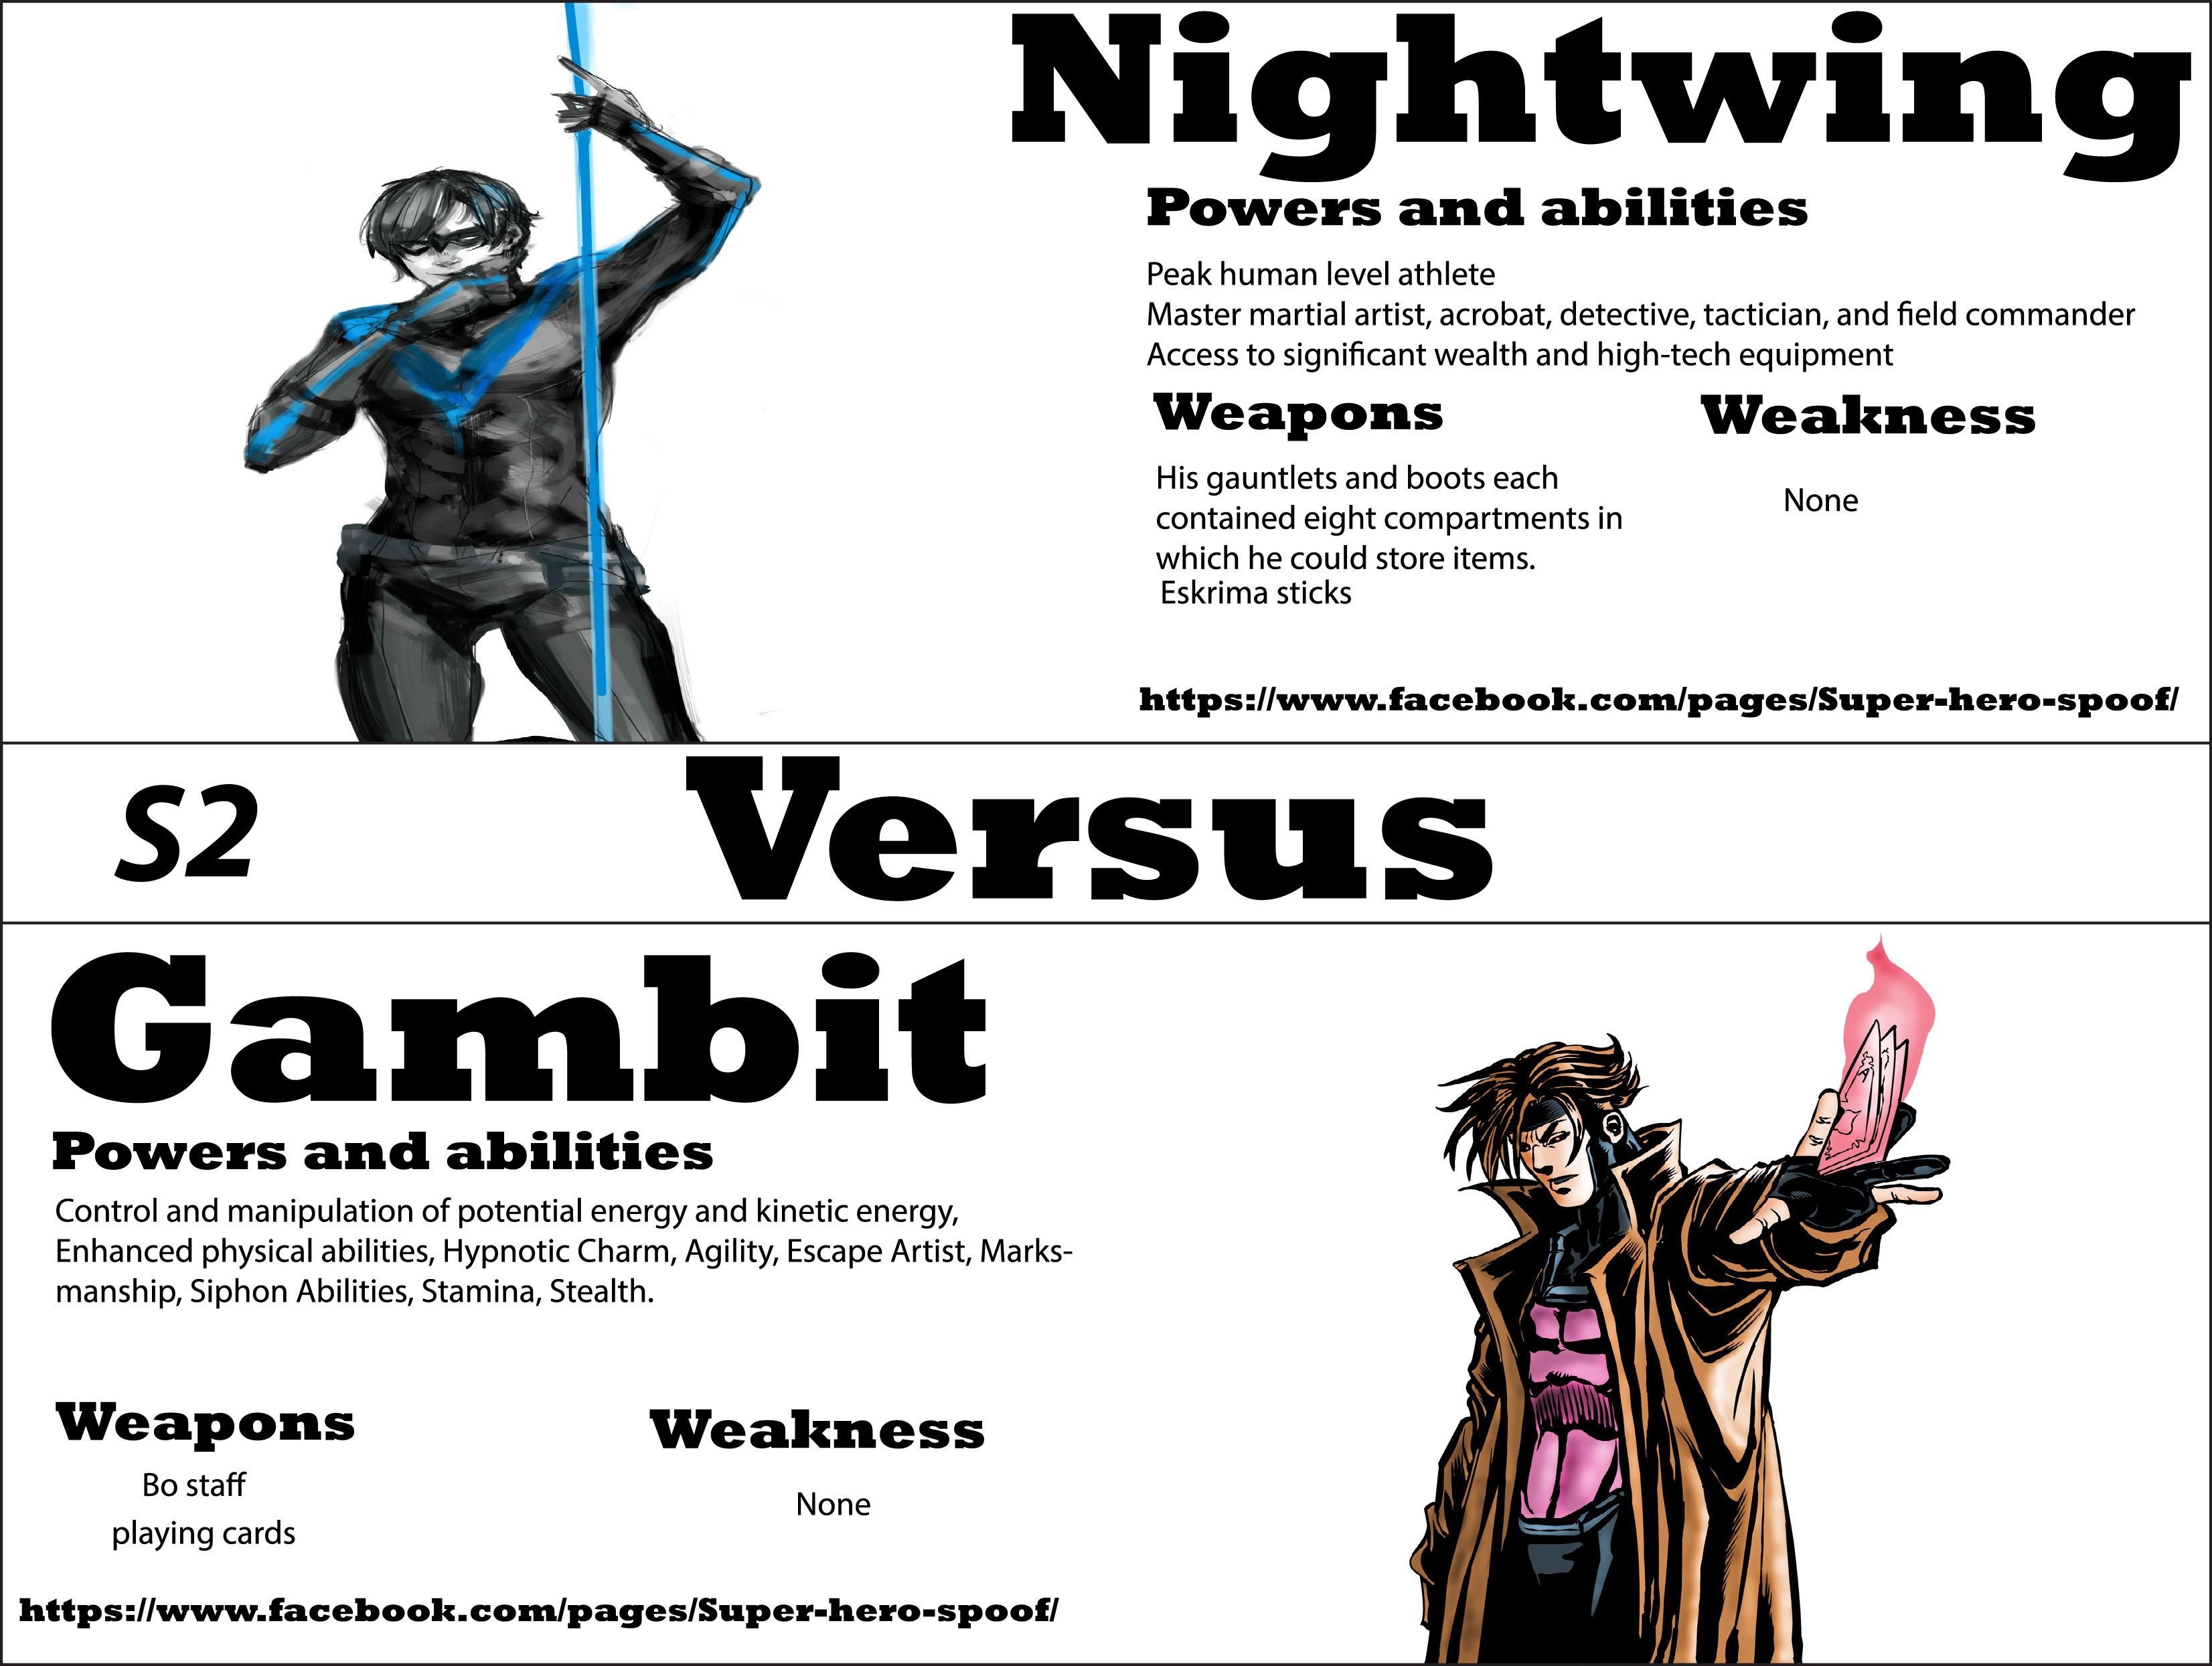 firestorm vs holocast who will win and why powers abilities nightwing vs gambit who will win and why powers abilities weaknesses